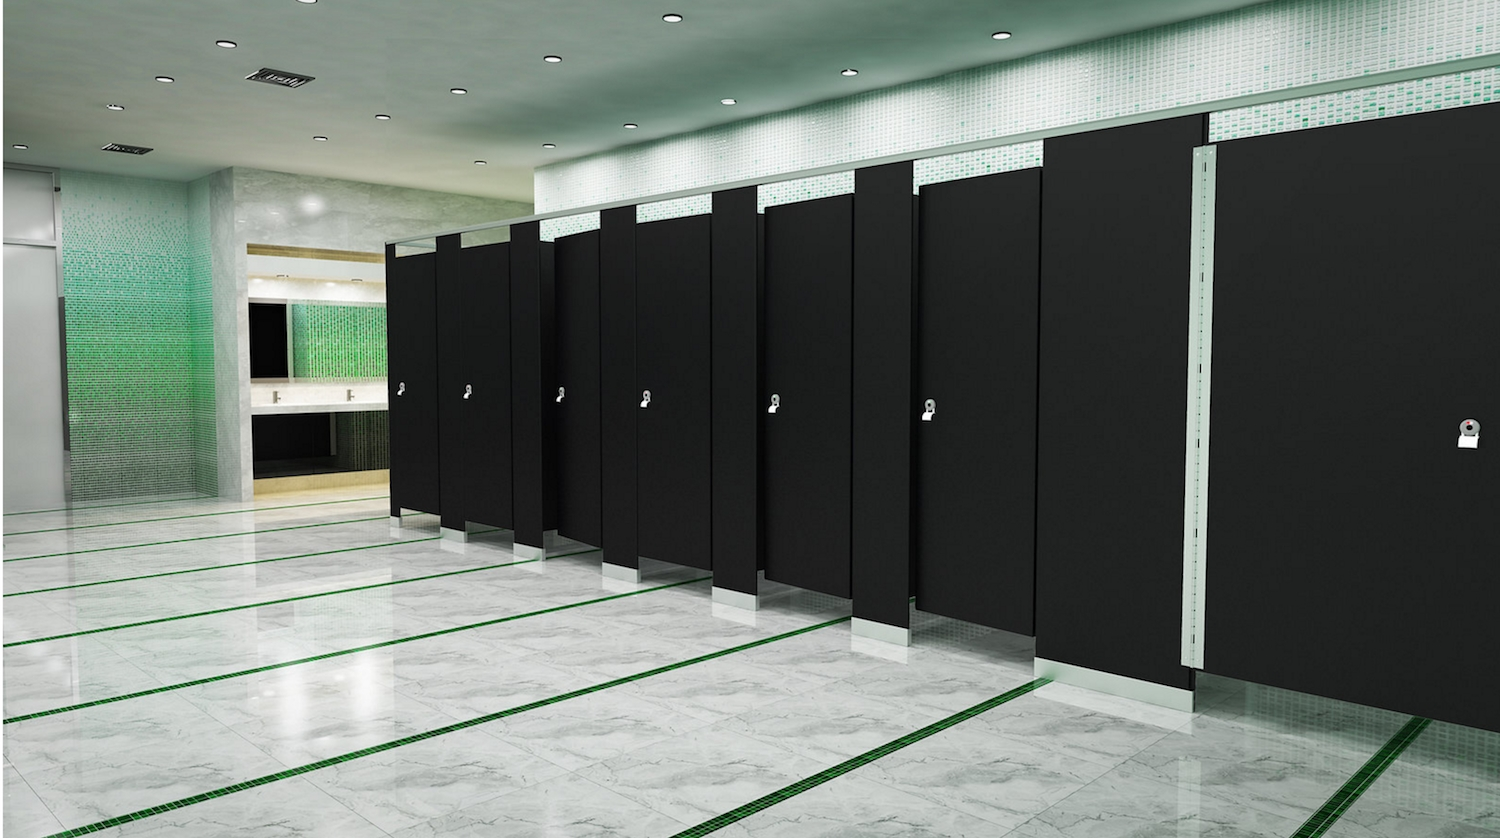 Reclaiming Privacy In Bathrooms Through New Partitions Commercial Bathroom Stalls Design